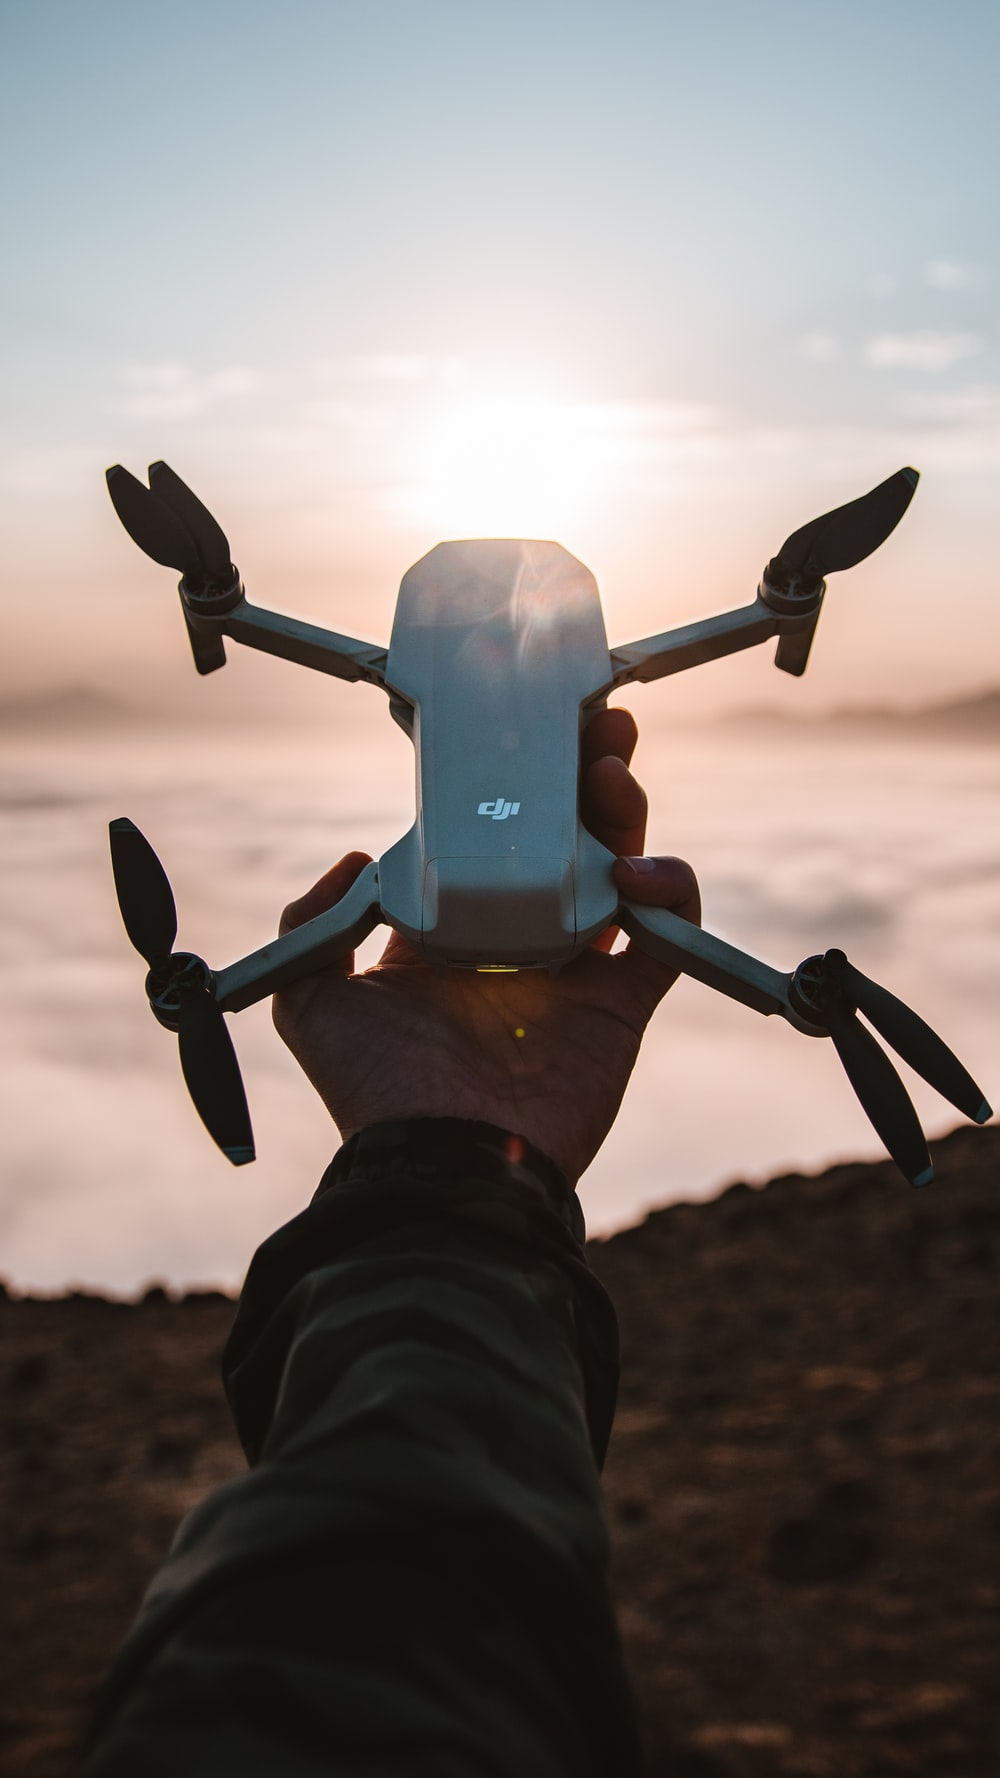 person holding gray and black drone